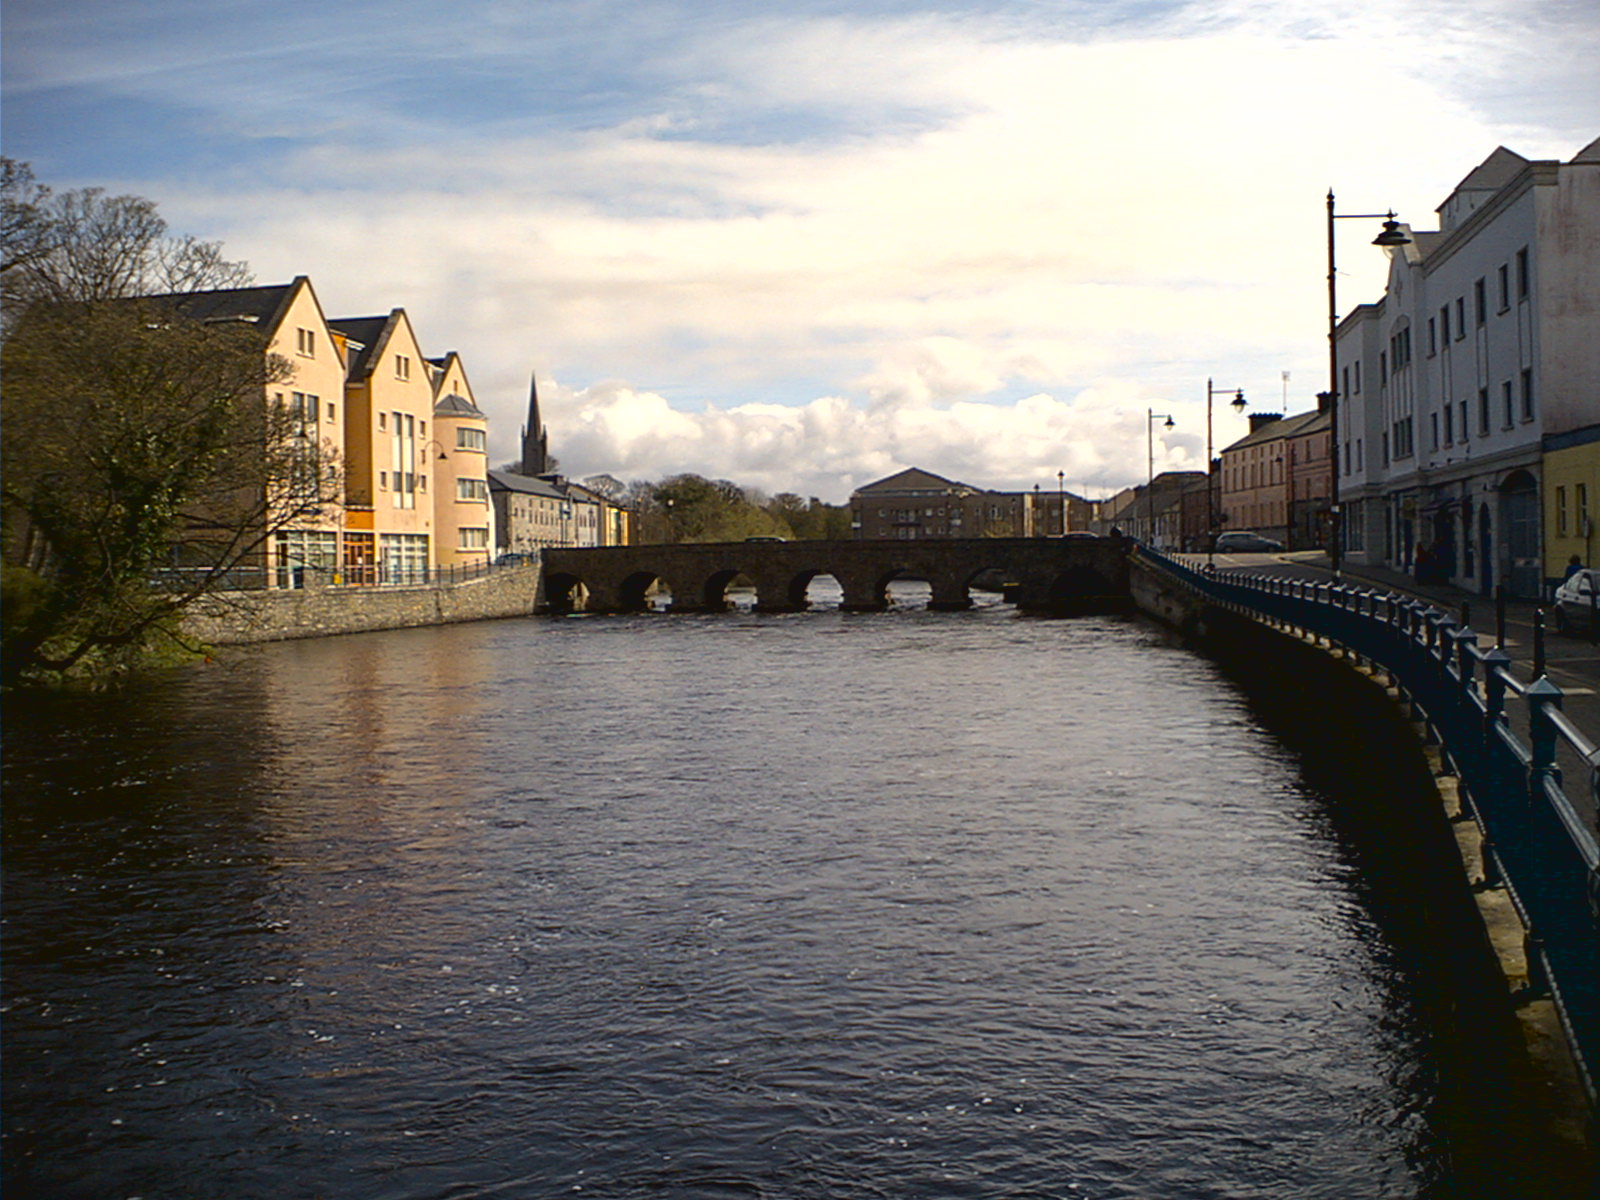 Sligo Ireland  City pictures : Sligo Town Wikipedia, the free encyclopedia